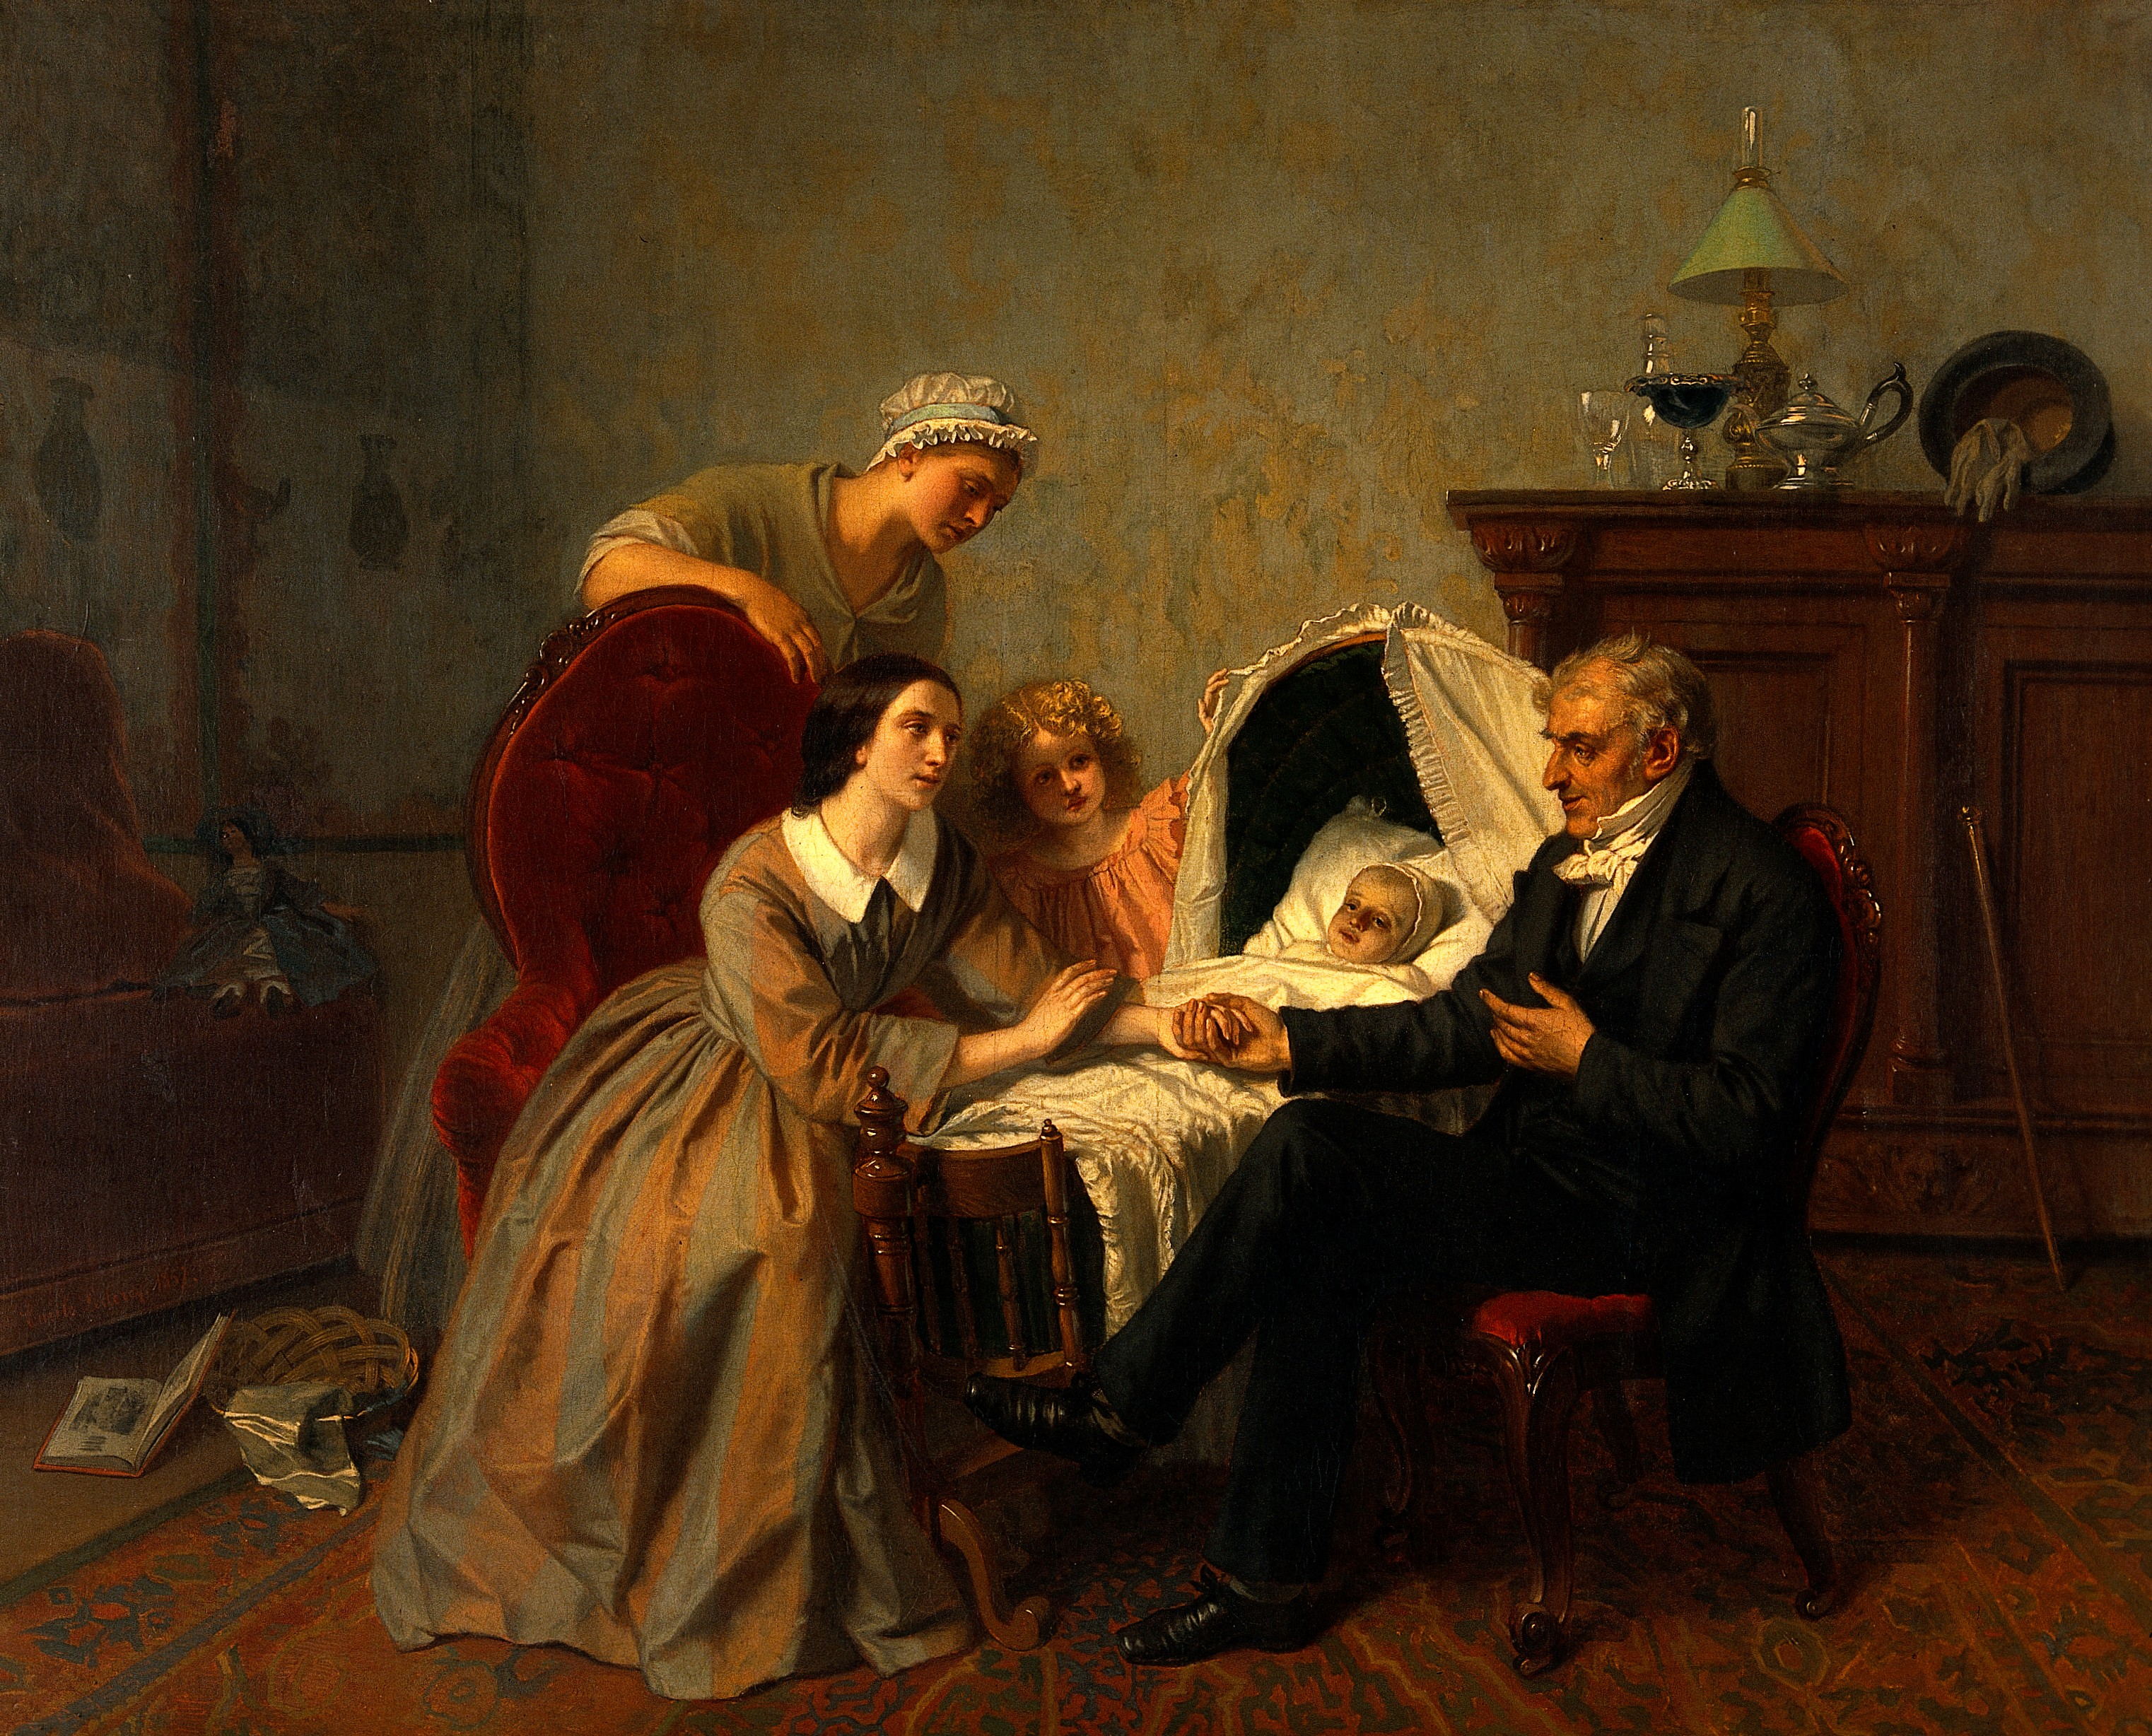 2 women, a young girl and an older gentleman are gathered around a cradle with a sick infant